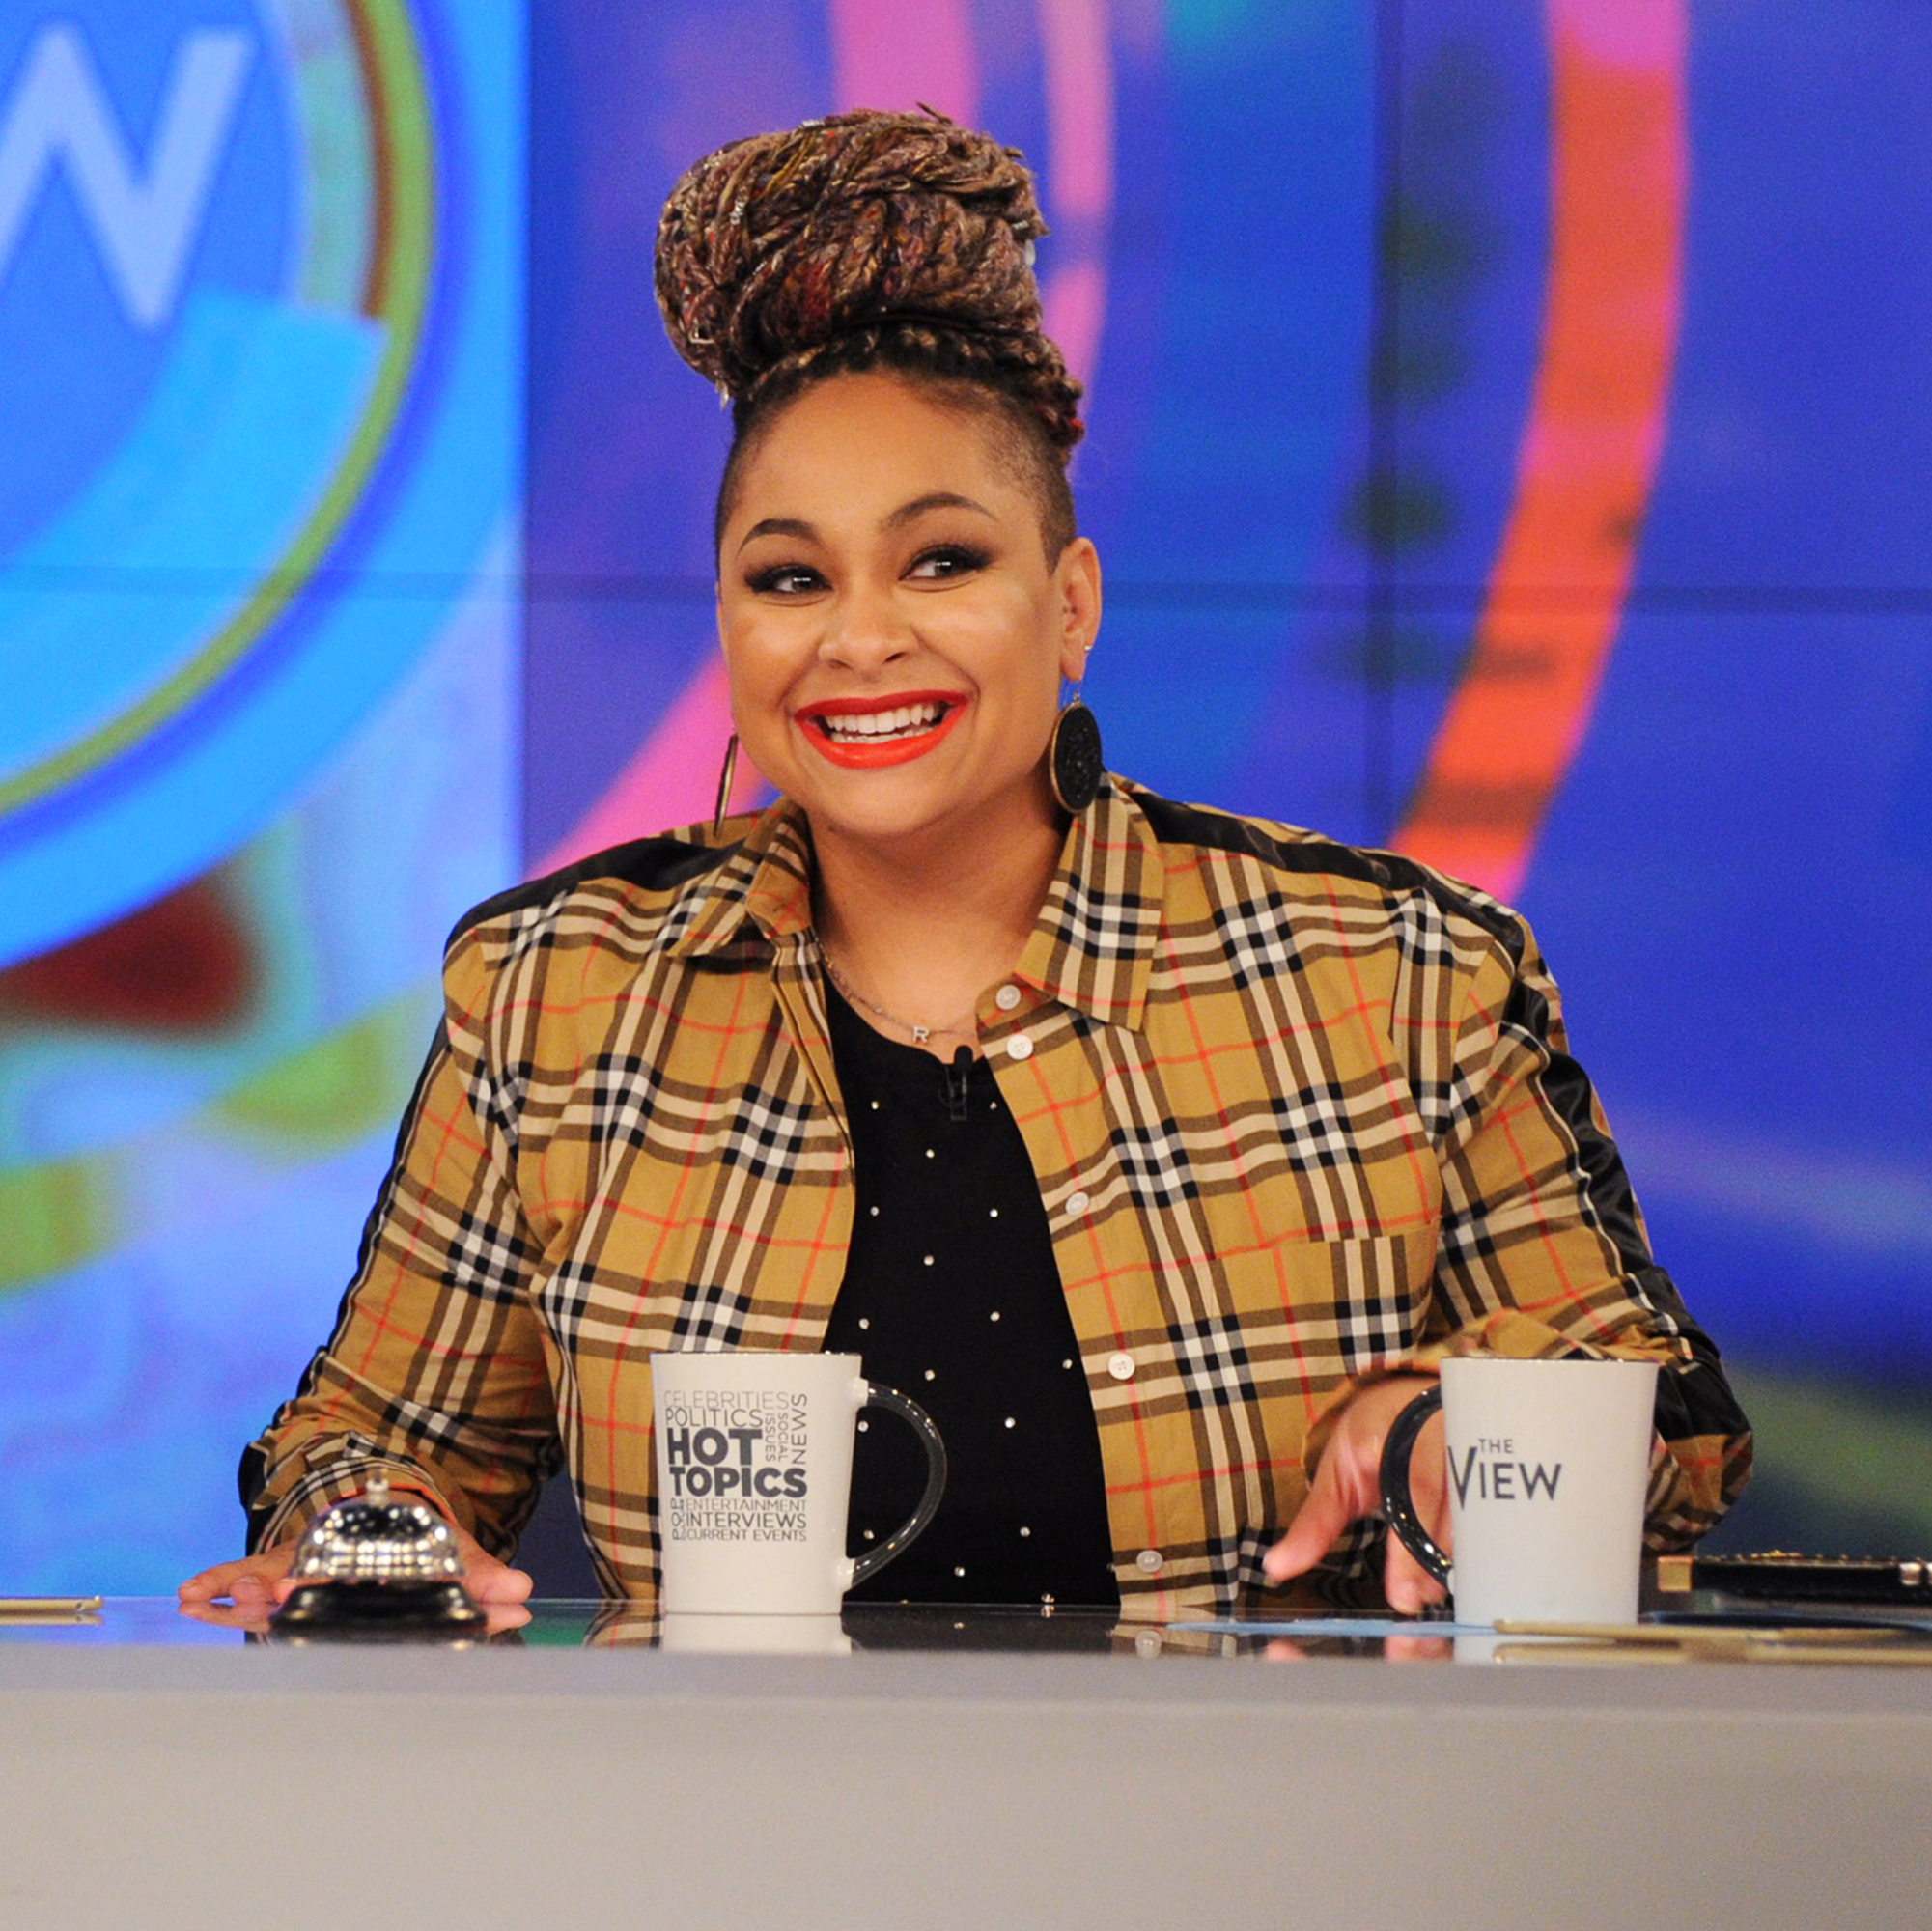 Every 'The View' Cohost Since 1997 Premiere: Joy Behar, Barbara Walters, Whoopi Goldberg and More - The That's So Raven alum joined the panel in 2015 for one season before returning to her Disney Channel roots for the Raven's Home reboot.